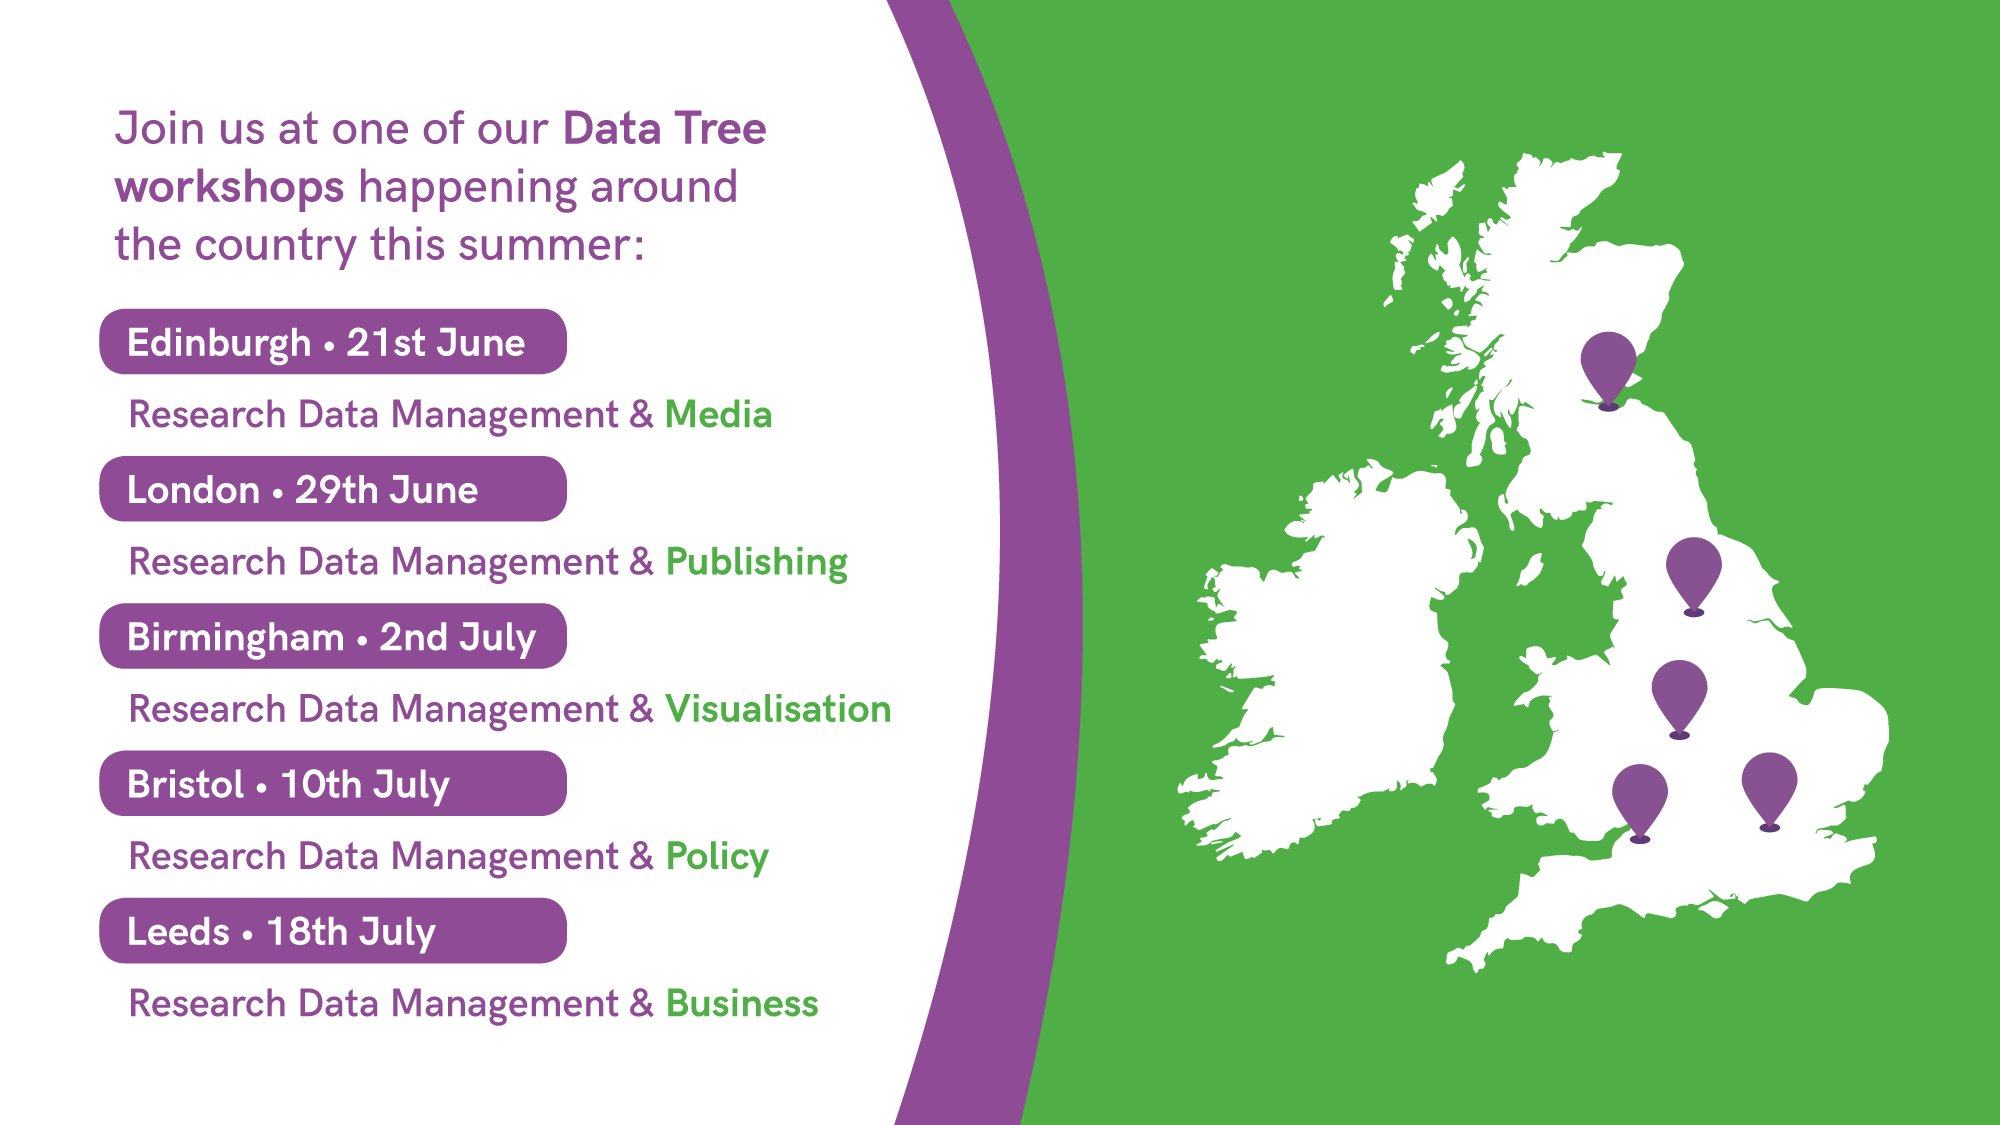 Data Tree Workshops